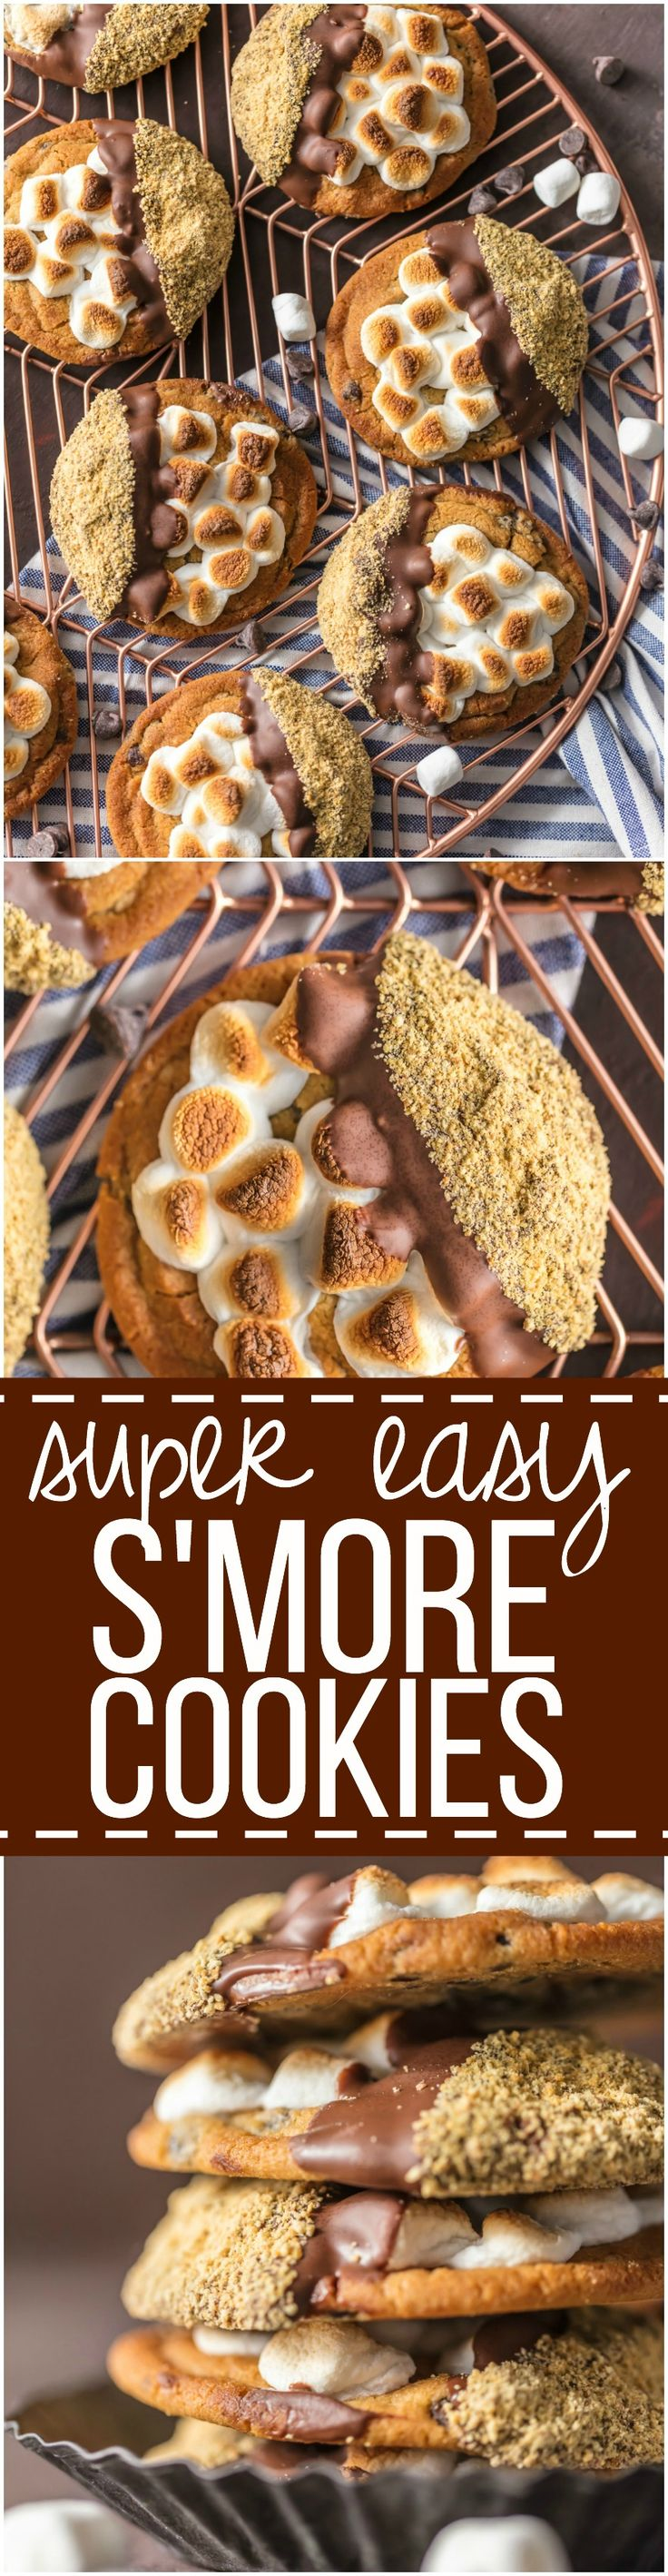 These Easy Smore Cookies are a favorite at our house for Christmas. It can be our little secret that they're made with premade refrigerated chocolate chip cookie dough, dipped in milk chocolate, then graham cracker crumbs. DIVINE!